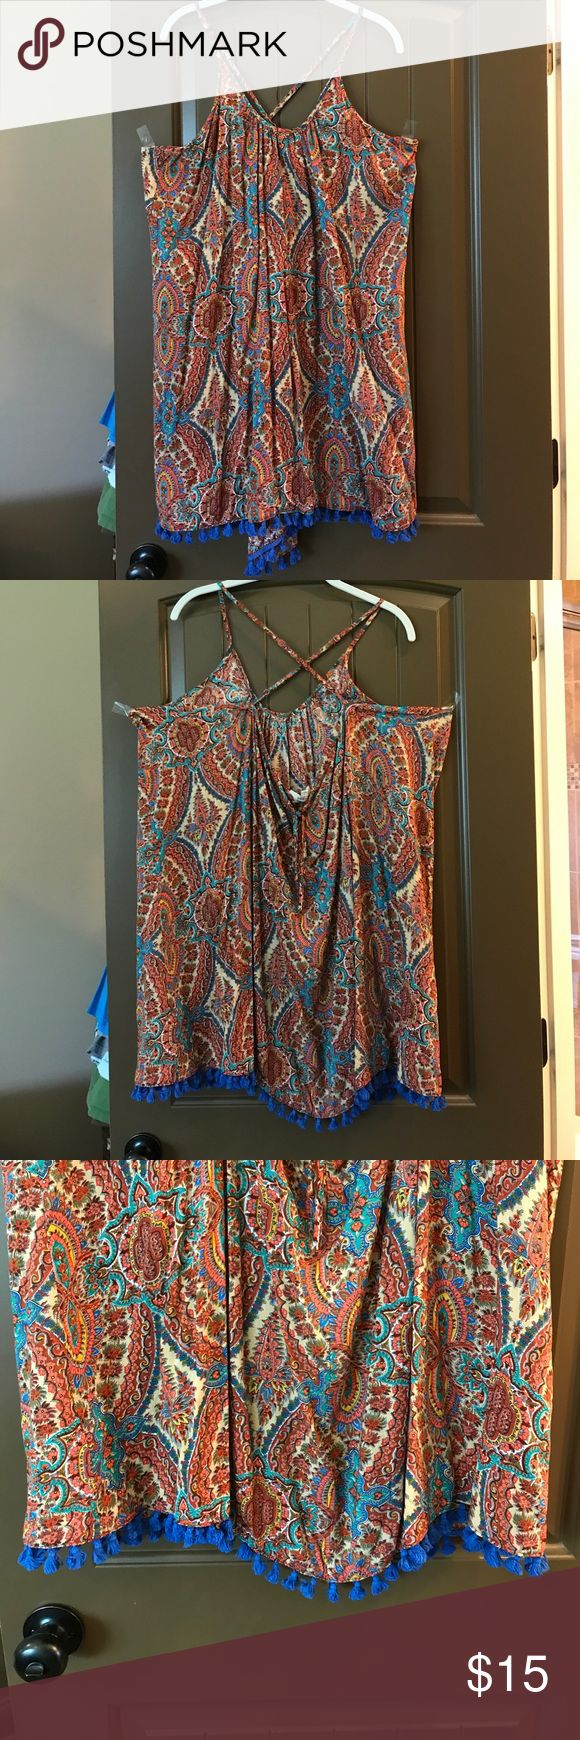 NWOT Umgee boho dress/cover up size Large FOR SALE NWOT Umgee boho dress/cover up size Large. Has cross cross back and blue Pom poms around bottom edge. Super cute. Could wear as a dress or as a swim cover up. Umgee Dresses